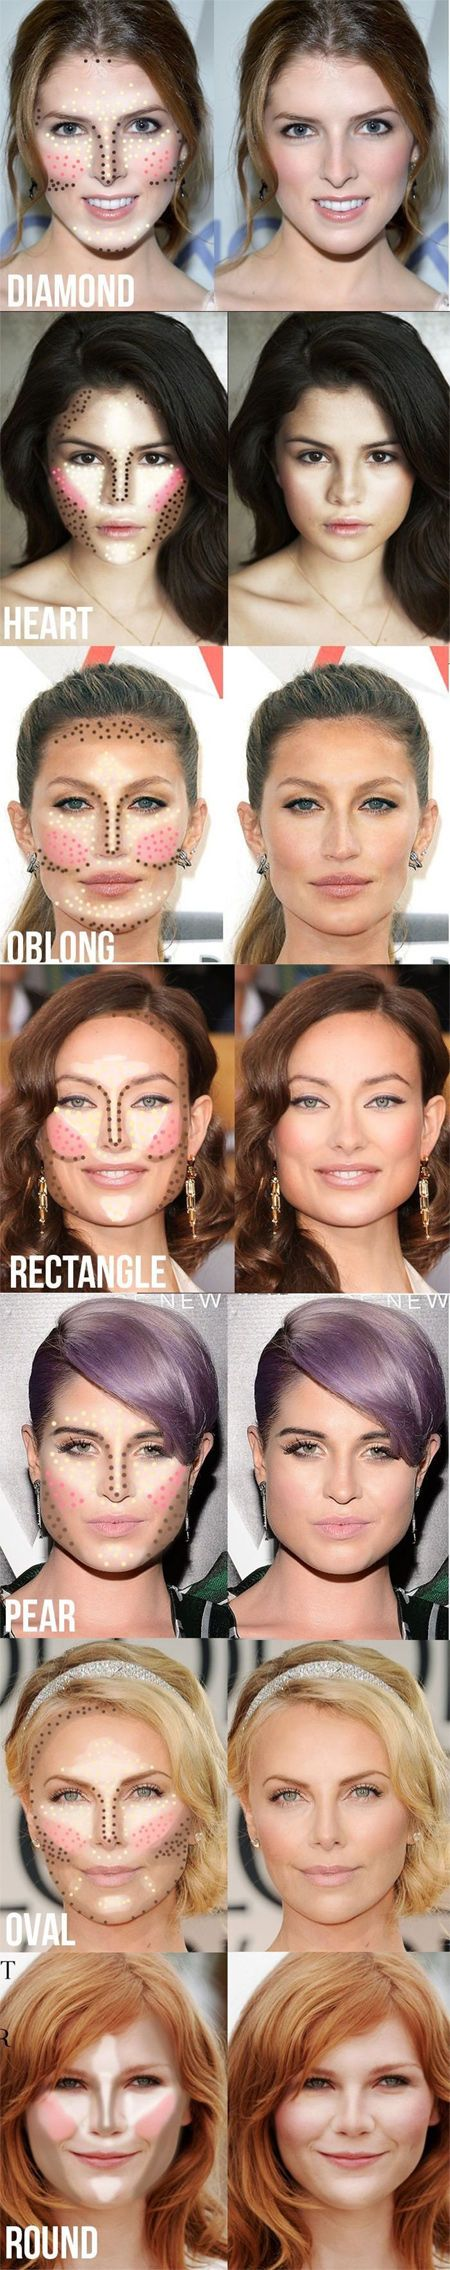 Makeup for different face shapes: